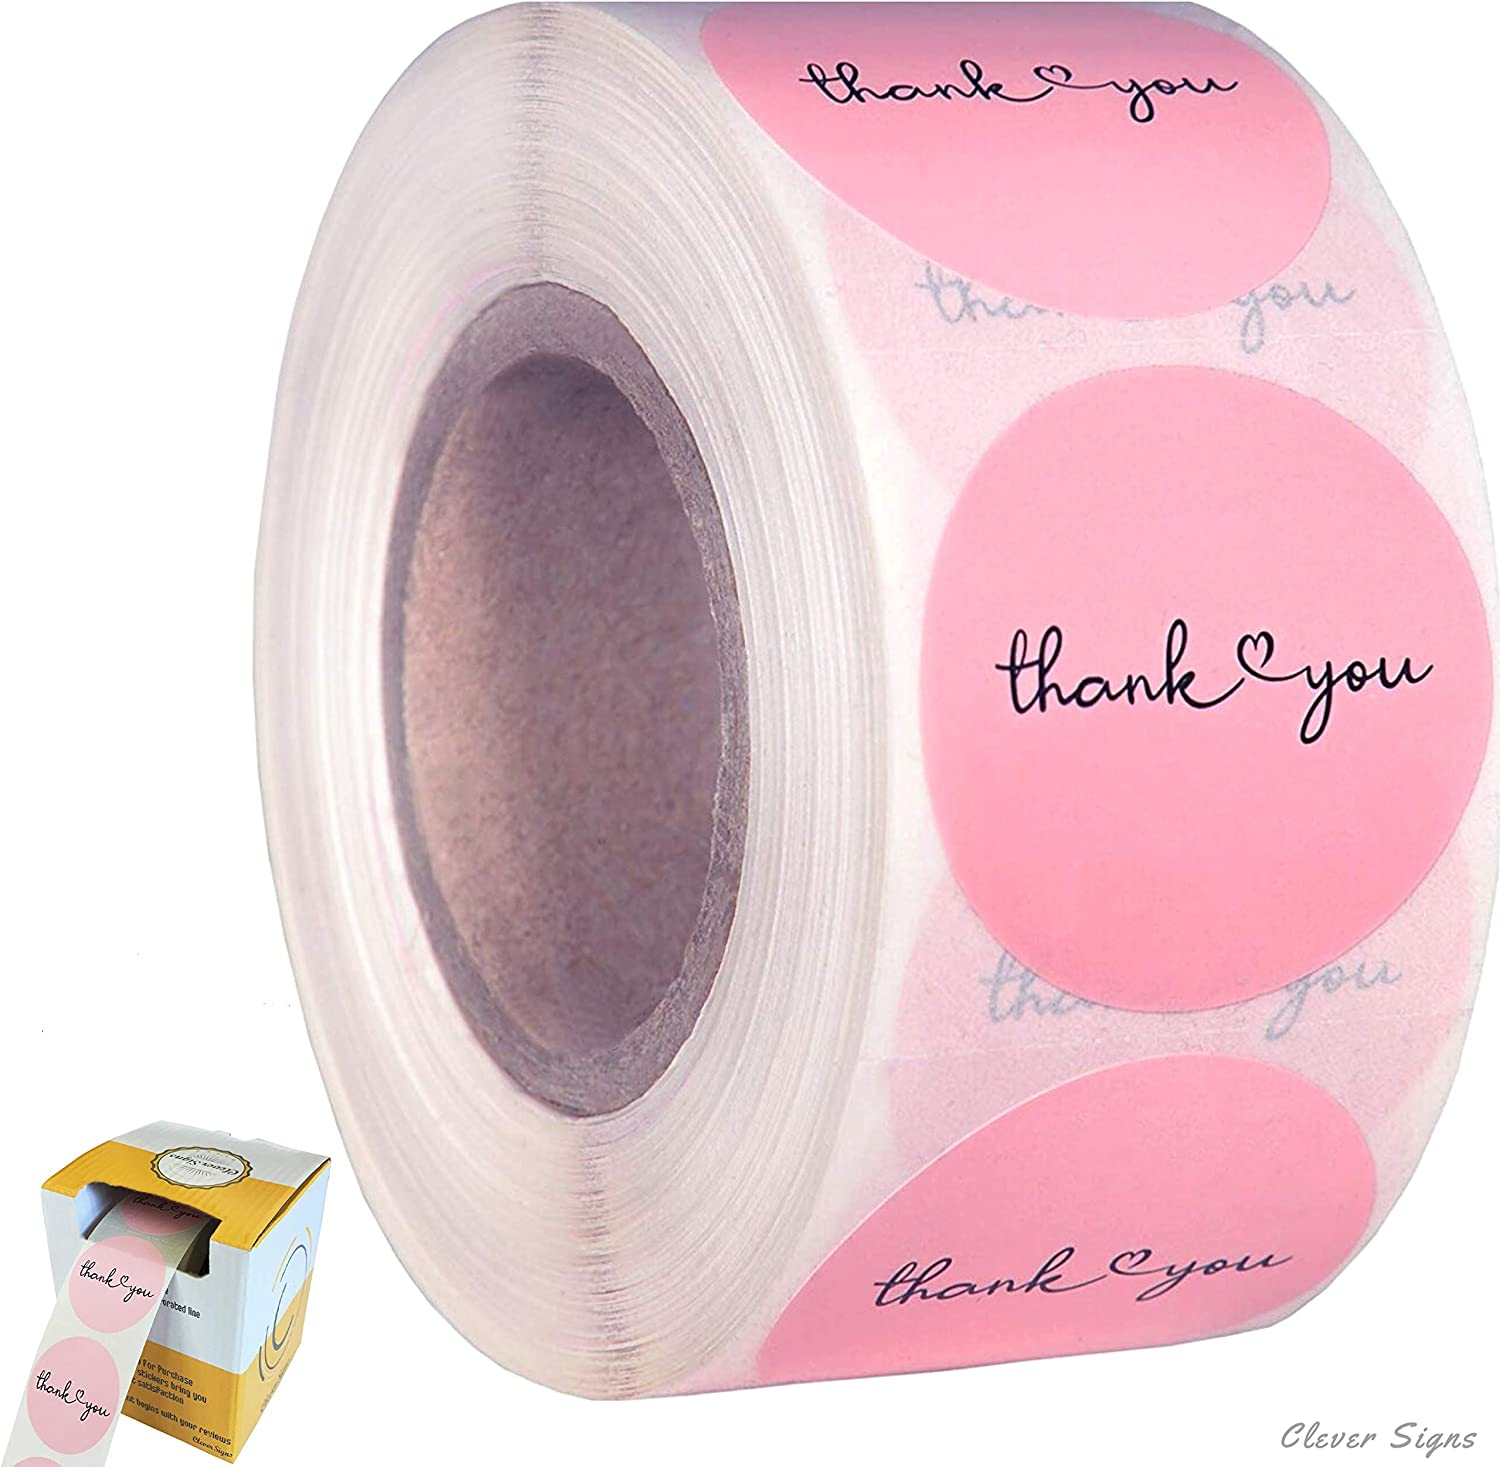 CLEVER SIGNS Thank You Stickers   1.5 inches 500 Pink Stickers   Dispenser Box   Unique Desing Thank You Stickers Roll   Great for Thank You Cards, Wedding Favors, Birthday, Baby Shower, Mailing Bags